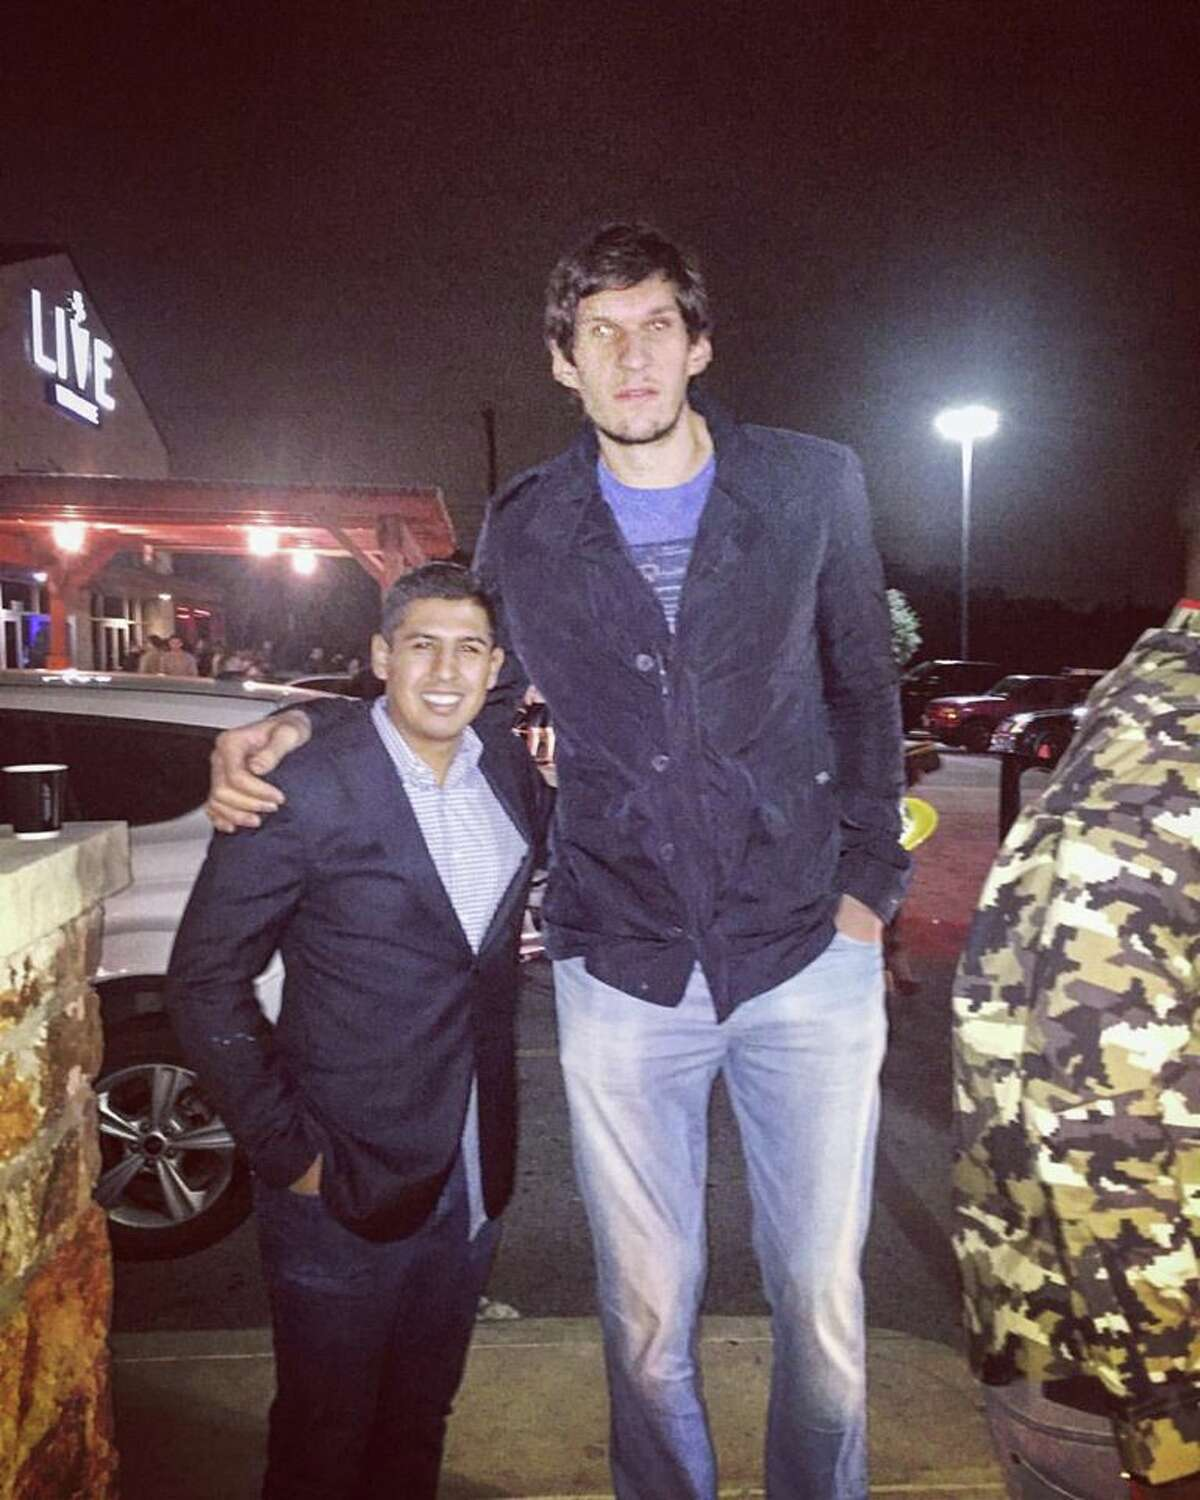 San Antonians who headed to the North Side for their New Year's Eve celebrations had the chance to tip off a fresh 12 months in the presence of Danny Green and Boban Marjanovic.